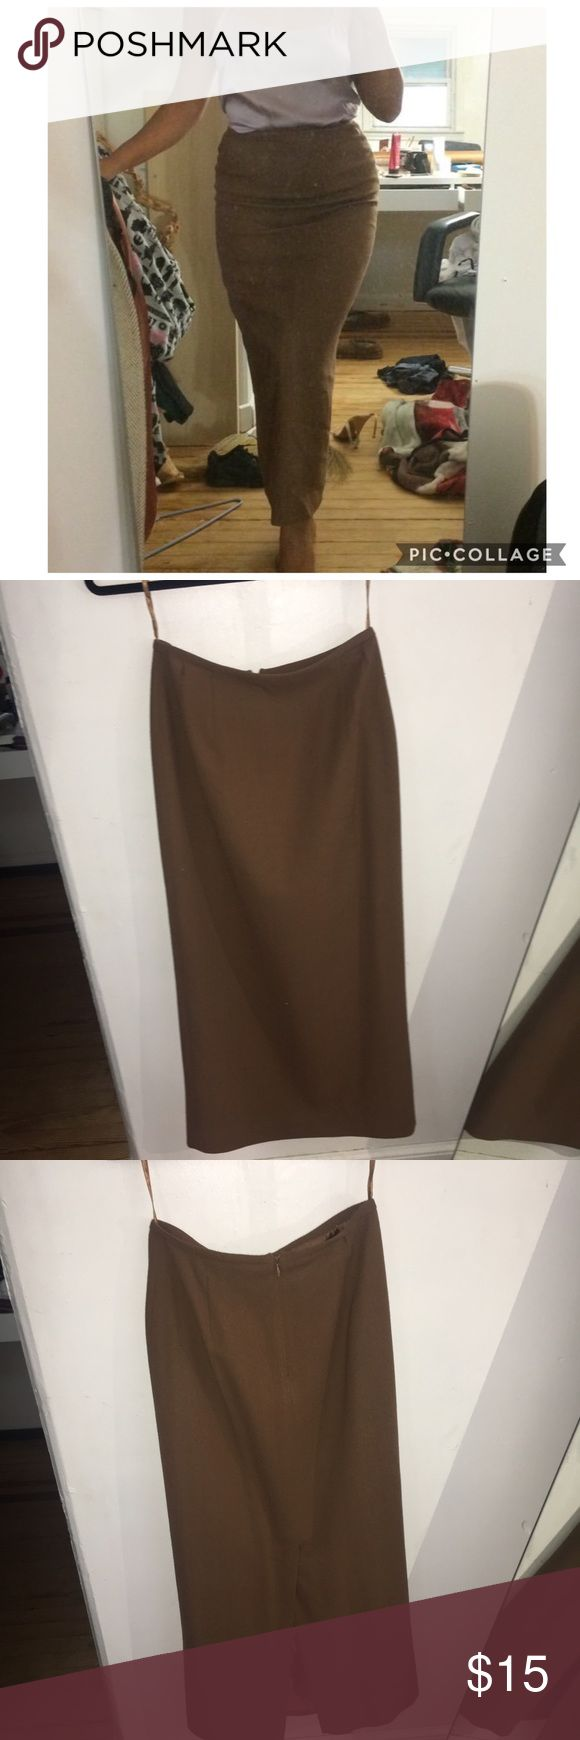 KIM K INSPIRED MAXI PENCIL SKIRT Beautiful dark caramel / camel color  100% wool & lining is 100% polyester  Very structured and shaping skirt  Zipper enclosure on the back w/ a back slit Last image is just an inspiration picture   Some tiny holes on the bottom of the skirt (see 3rd image) & near the top by the waist band  Measurements: waist 26 inches (can fit a 24,25,26) Length: 36 inches long   PRICE IS NEGOTIABLE Yeezy Skirts Maxi